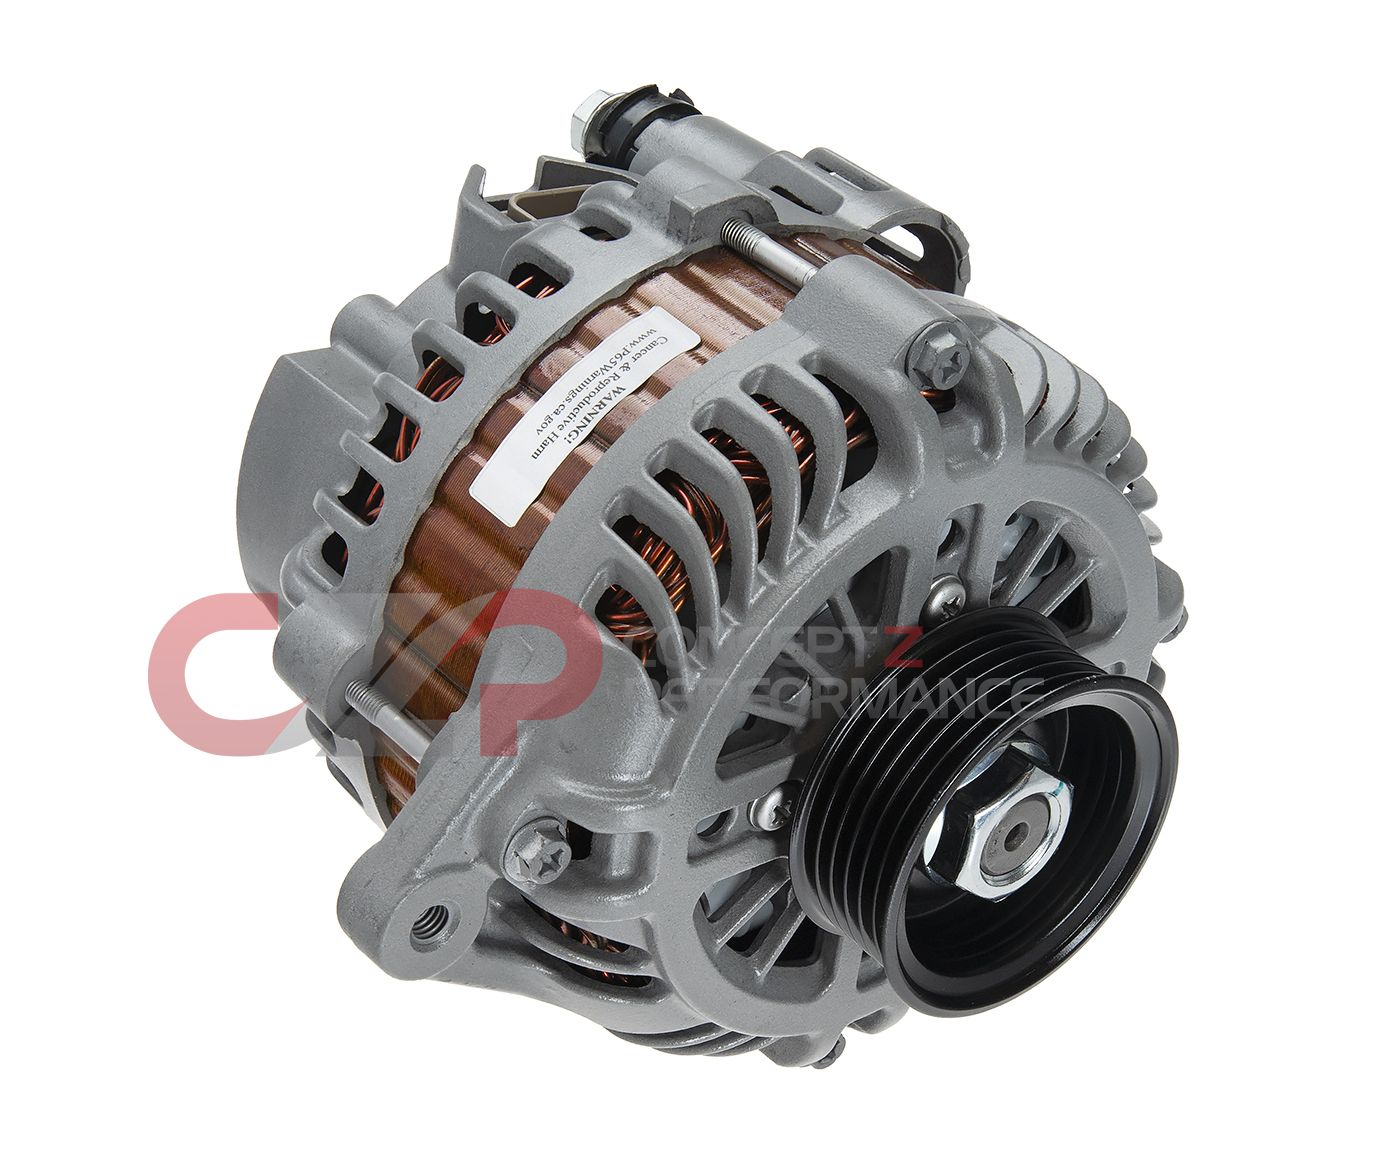 WPS High Output 200 Amp Alternator Assembly VQ35DE - Nissan 350Z / Infiniti G35